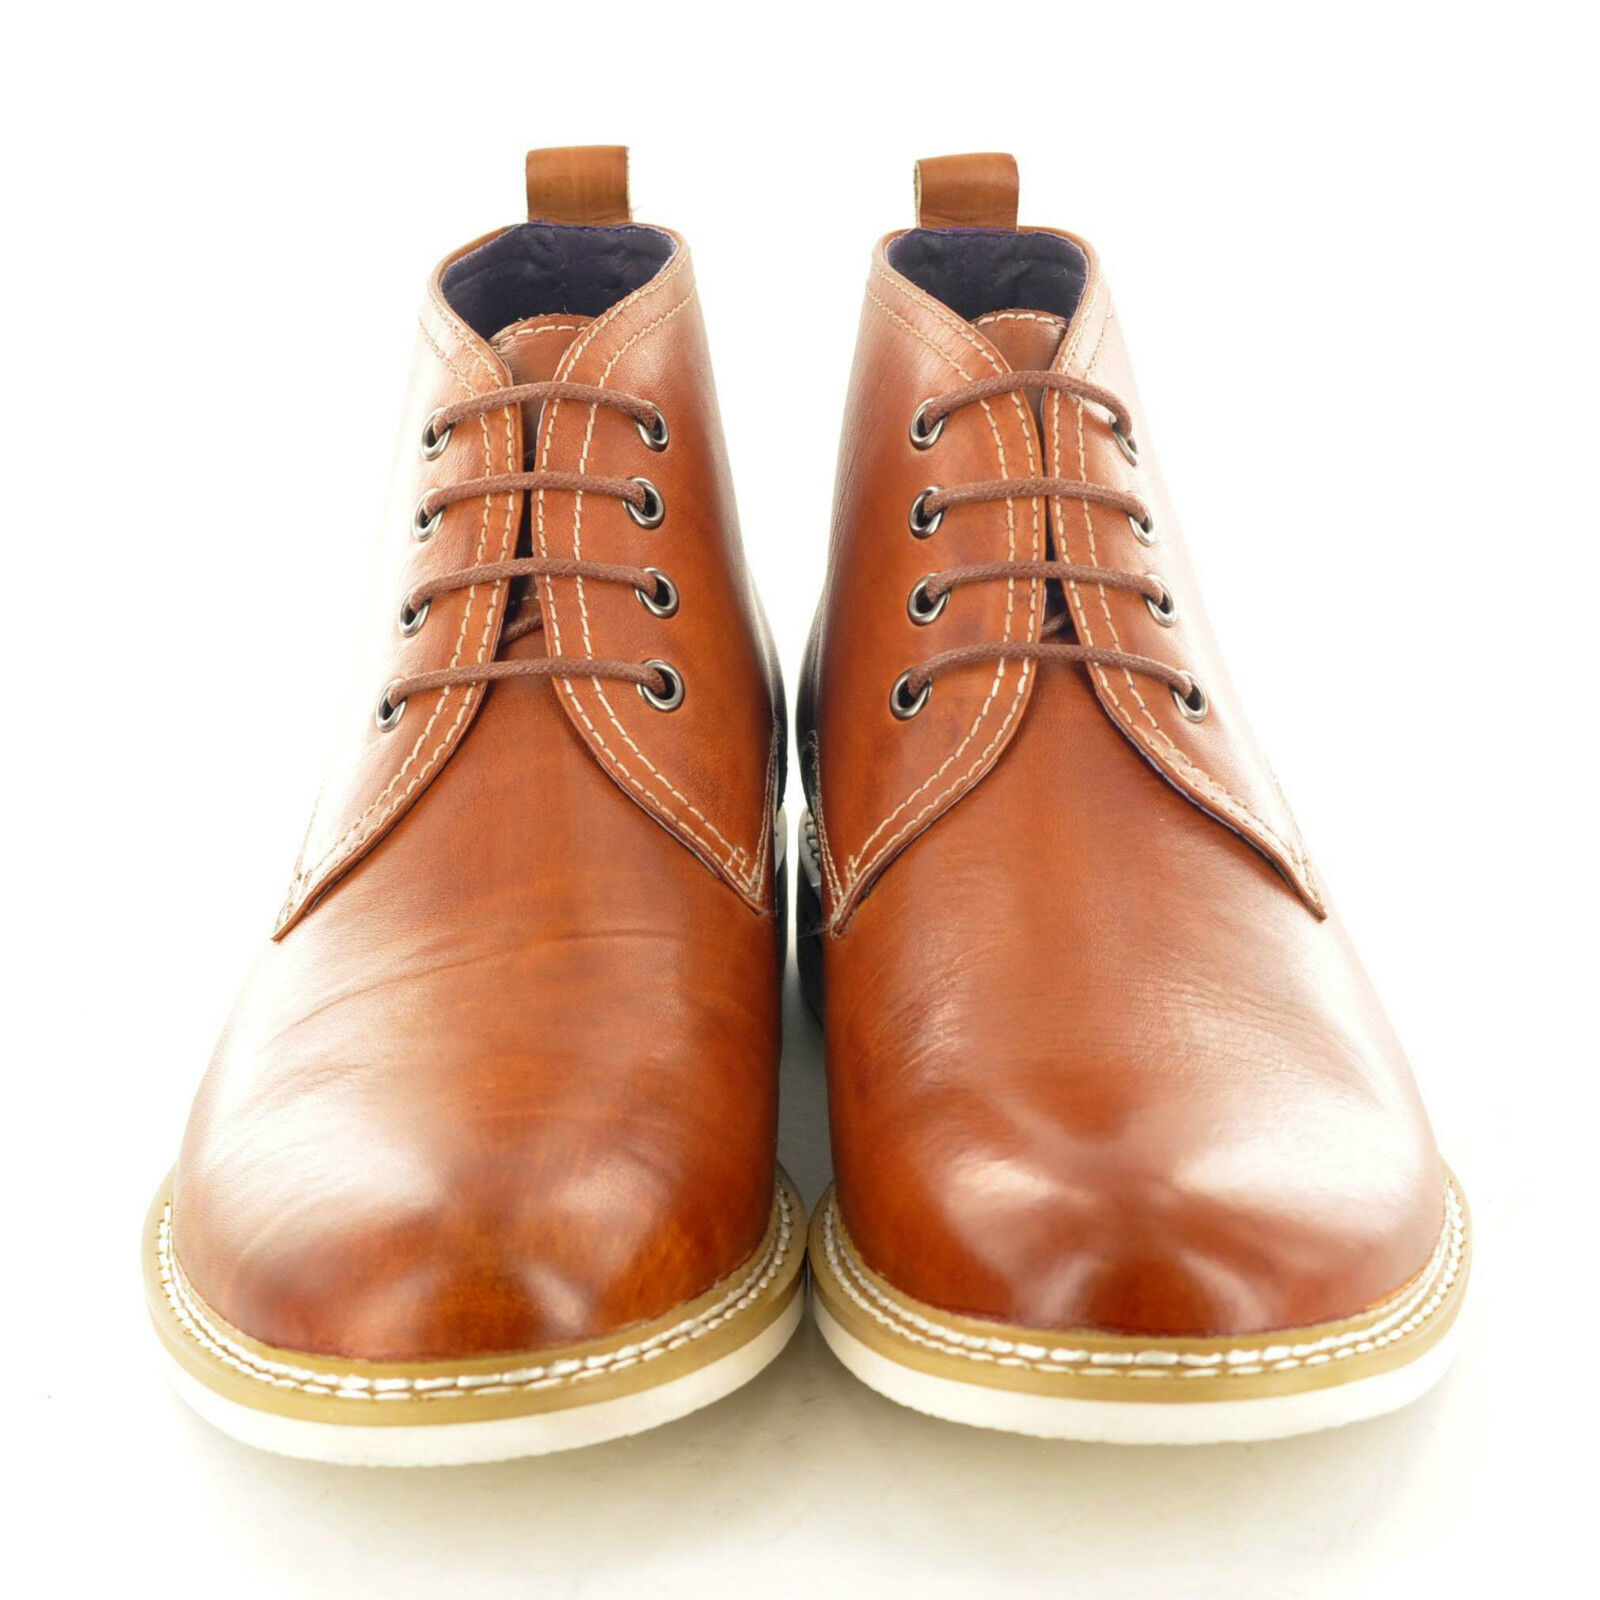 Mens Italian Style Genuine Leather Formal Formal Formal Chelsea  Ankle Boots  6 7 8 9 10 11 12 7b963f